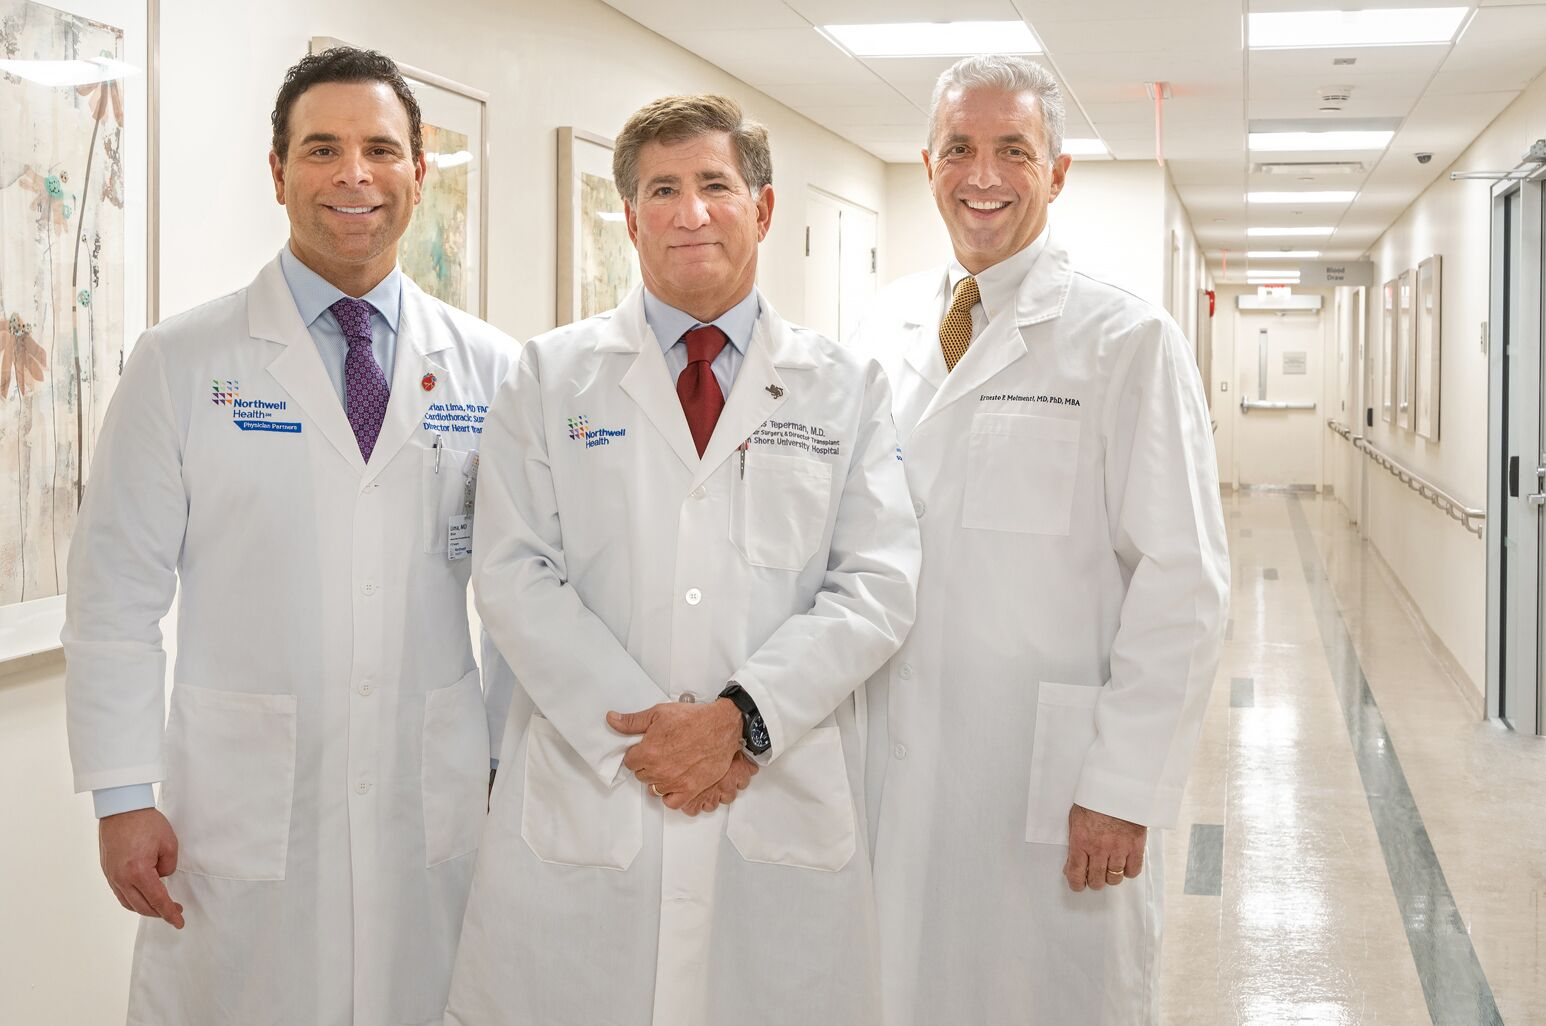 Northwell's organ transplant leadership